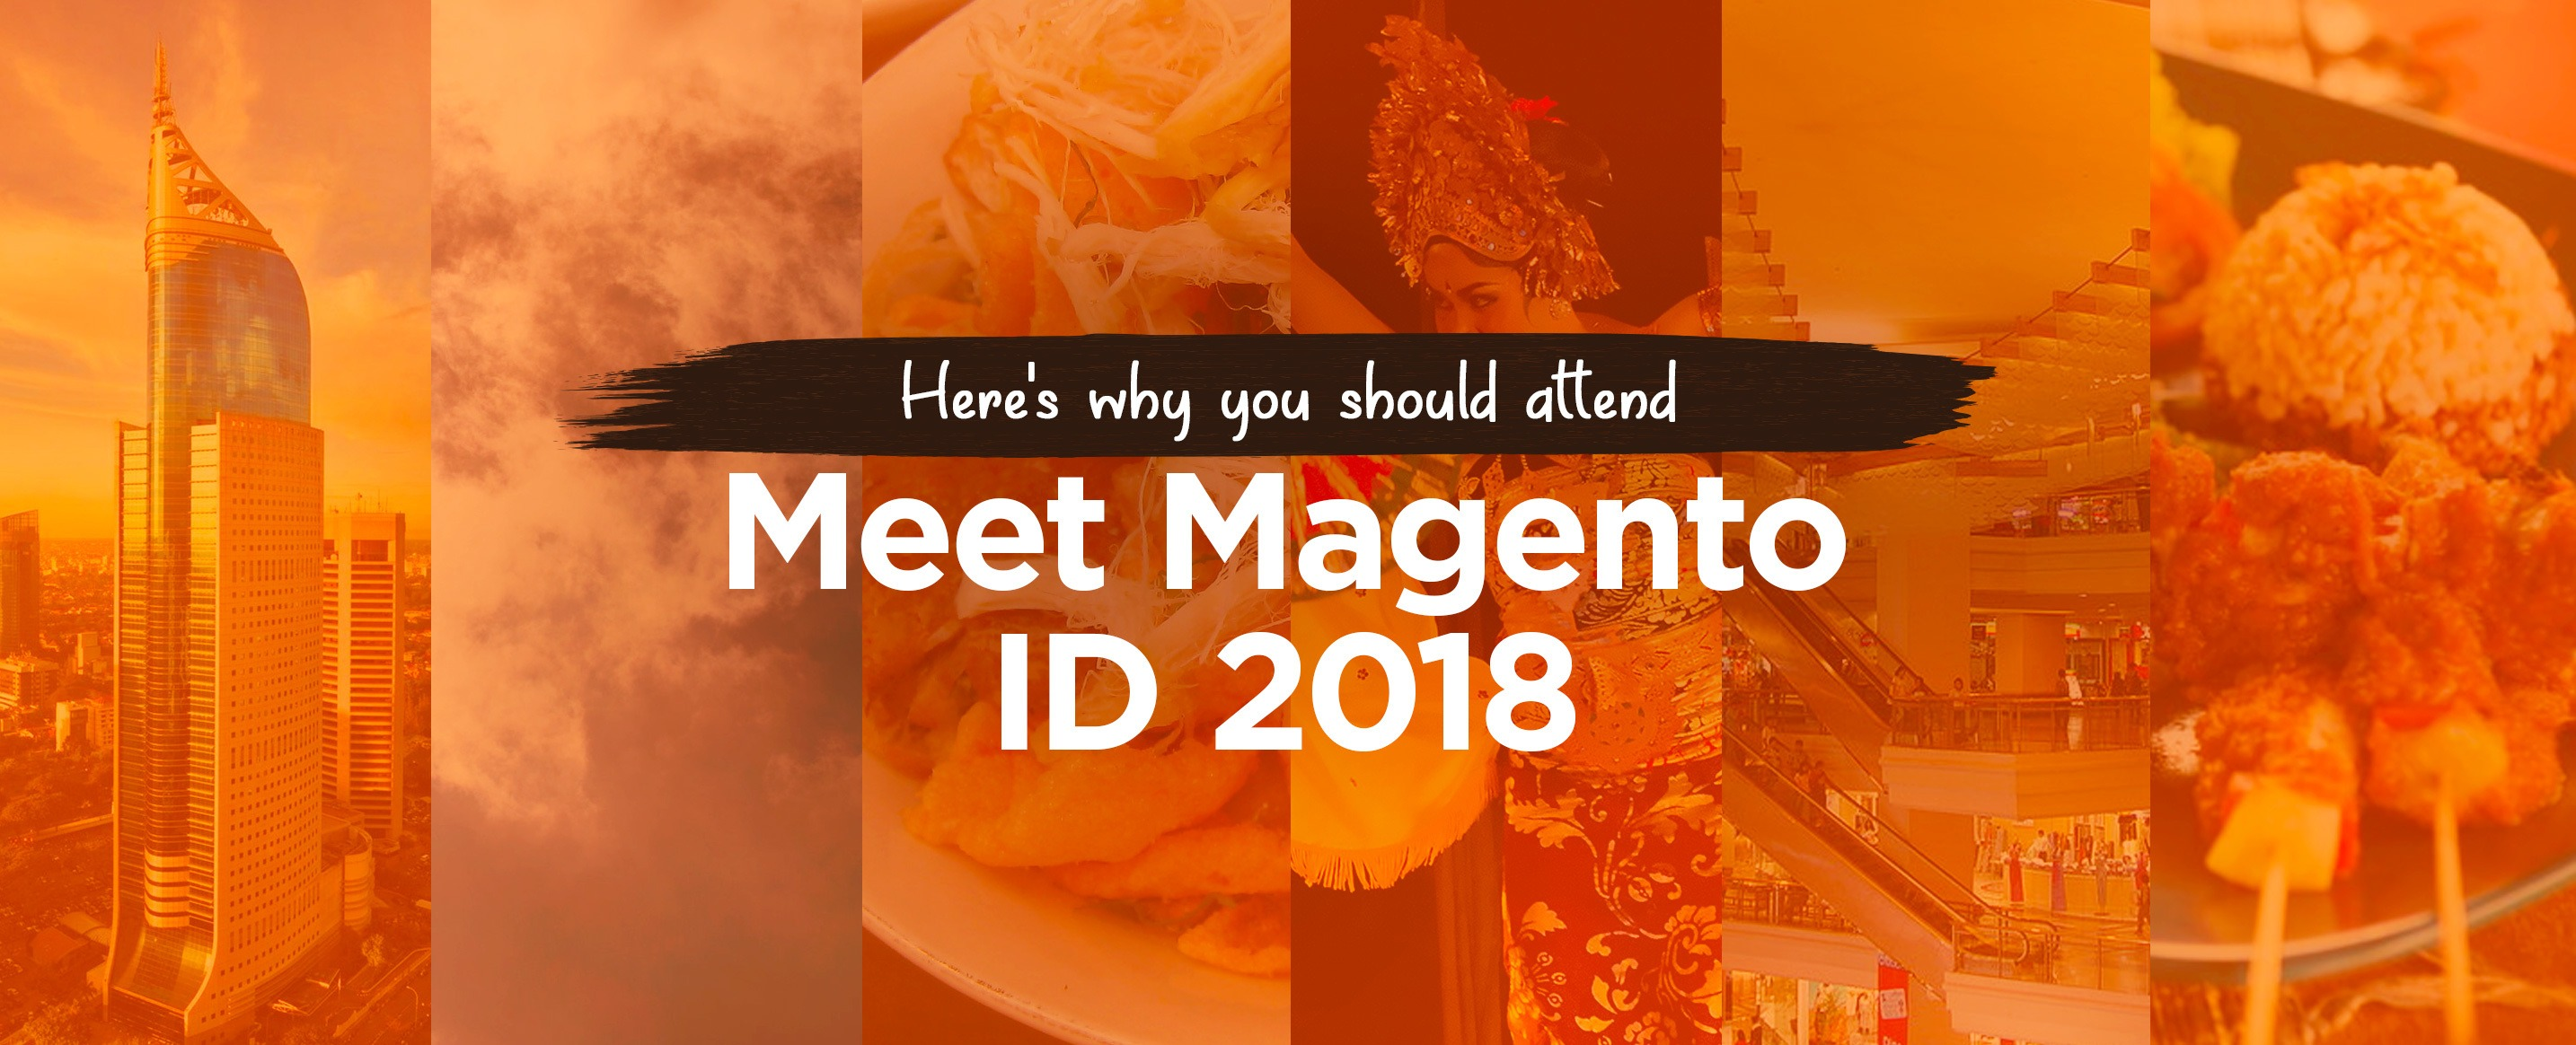 Here's-why-you-should-attend-Meet-Magento-Indonesia-2018